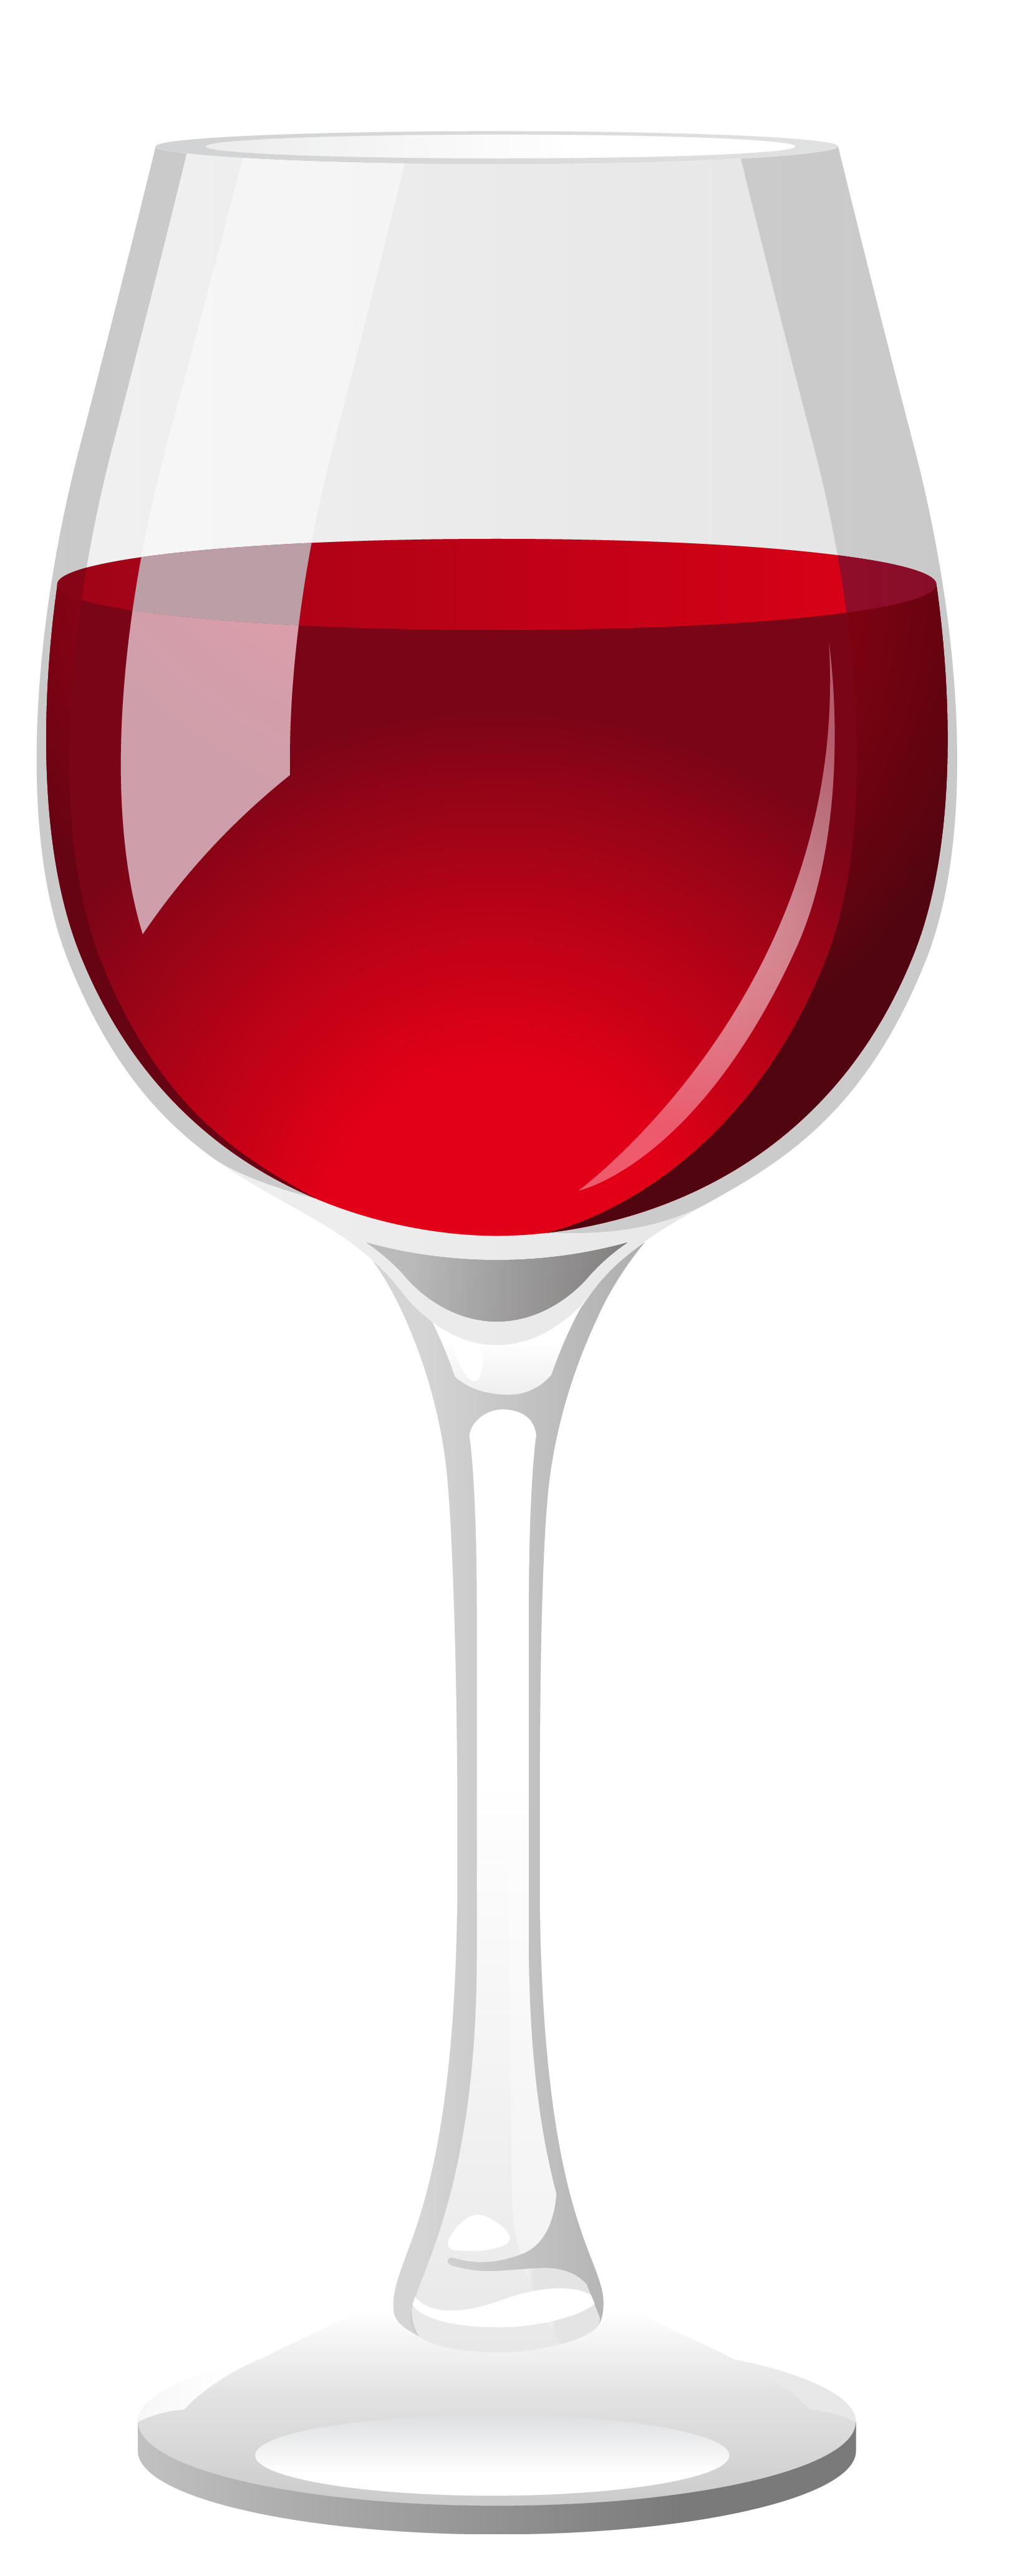 Red glass png best. Clipart heart wine